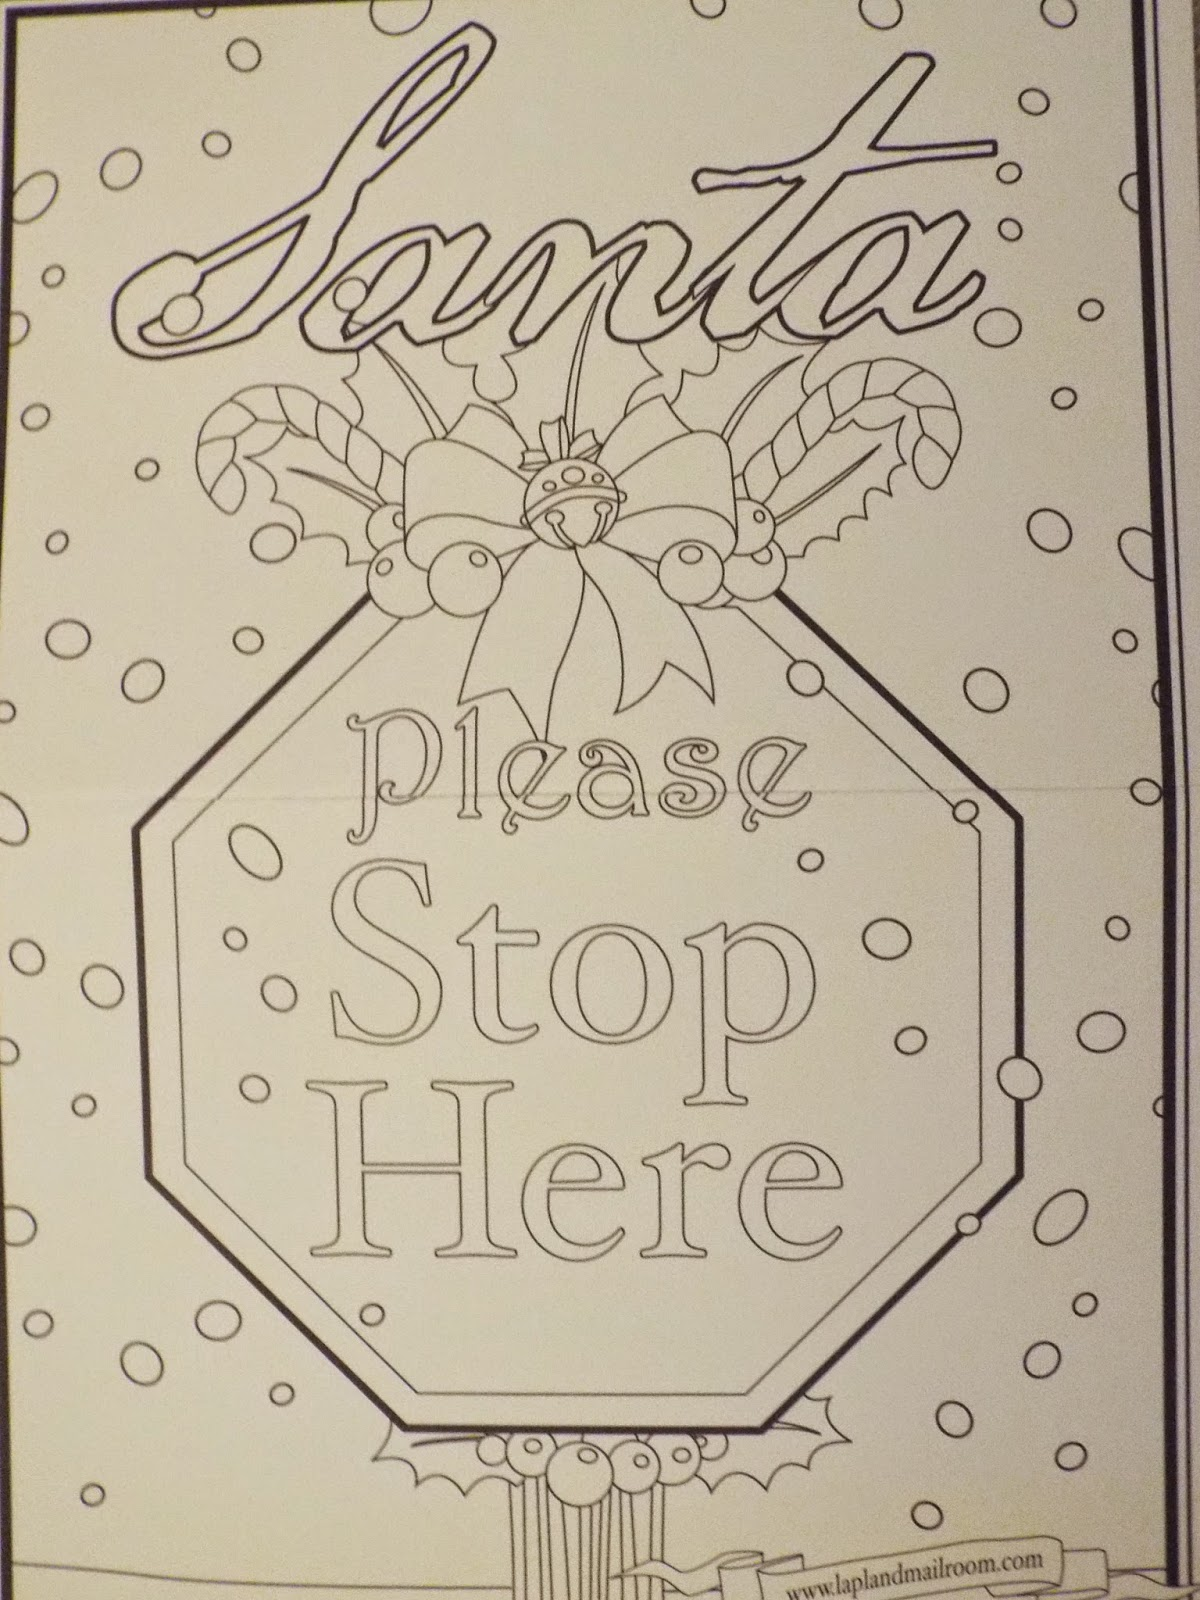 Santa Stop Here Coloring Page With Hijacked By Twins Lapland Mailroom A Letter From